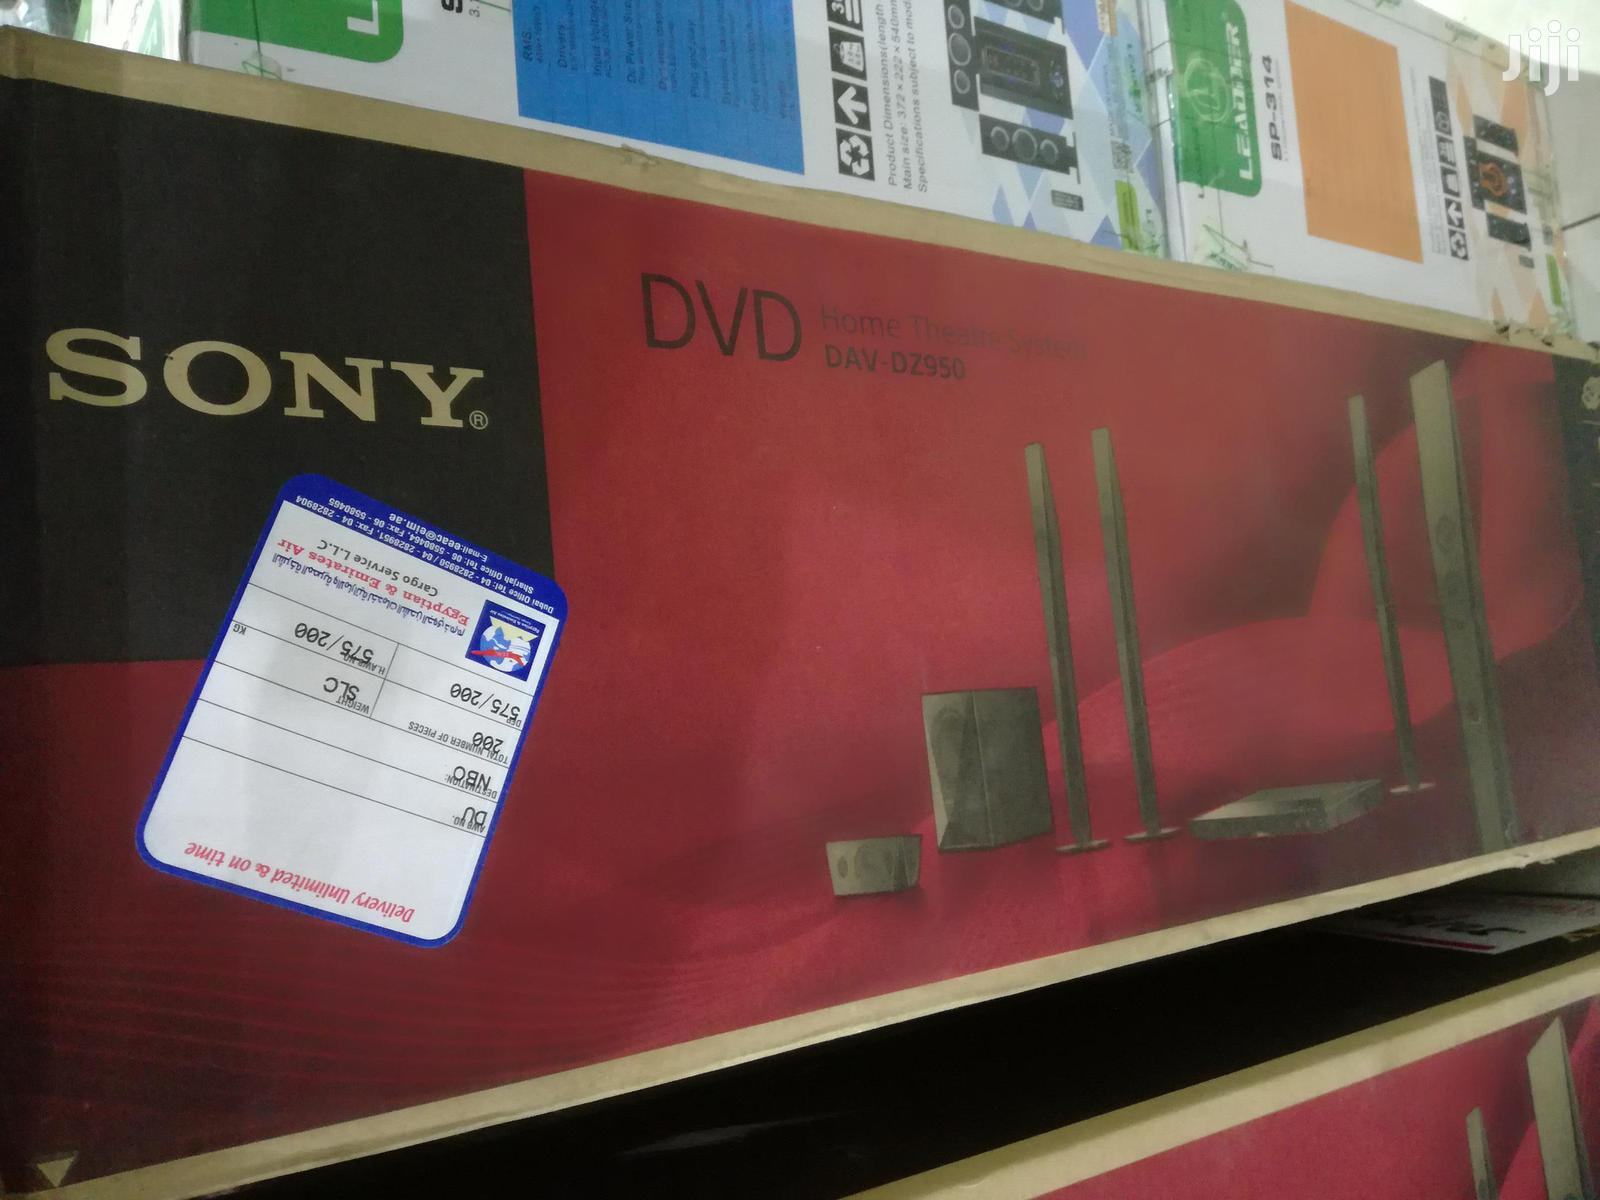 Archive: Sony DAV-DZ950 - 5.1ch DVD Home Theater System - 1000watts - Black